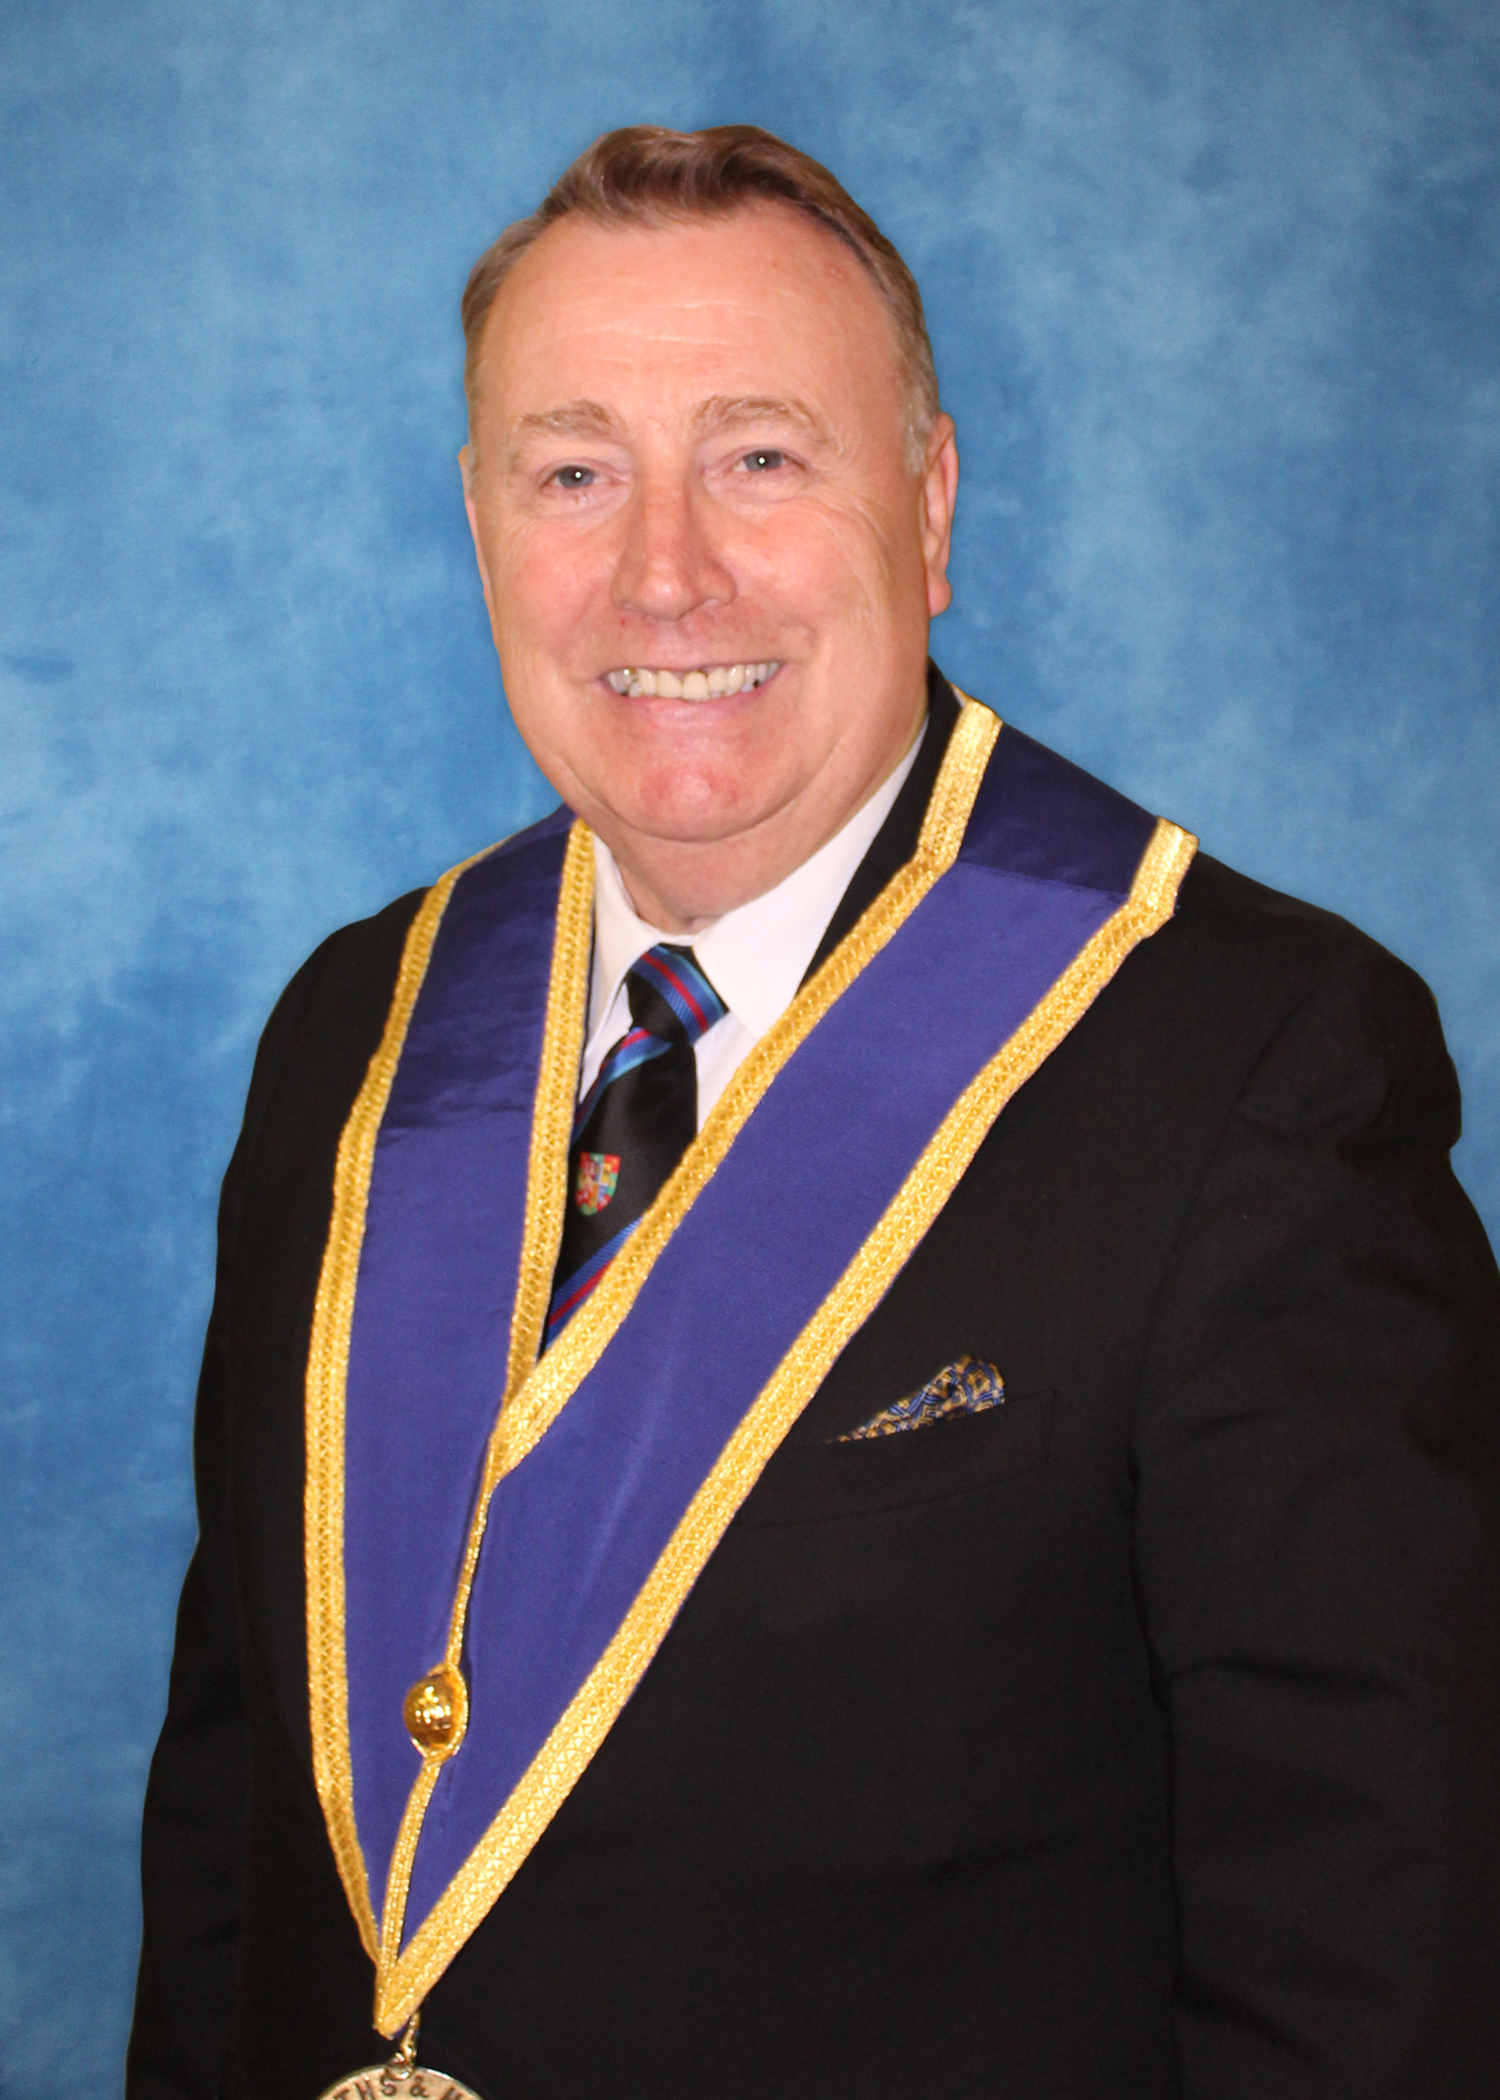 WBro William Diggins